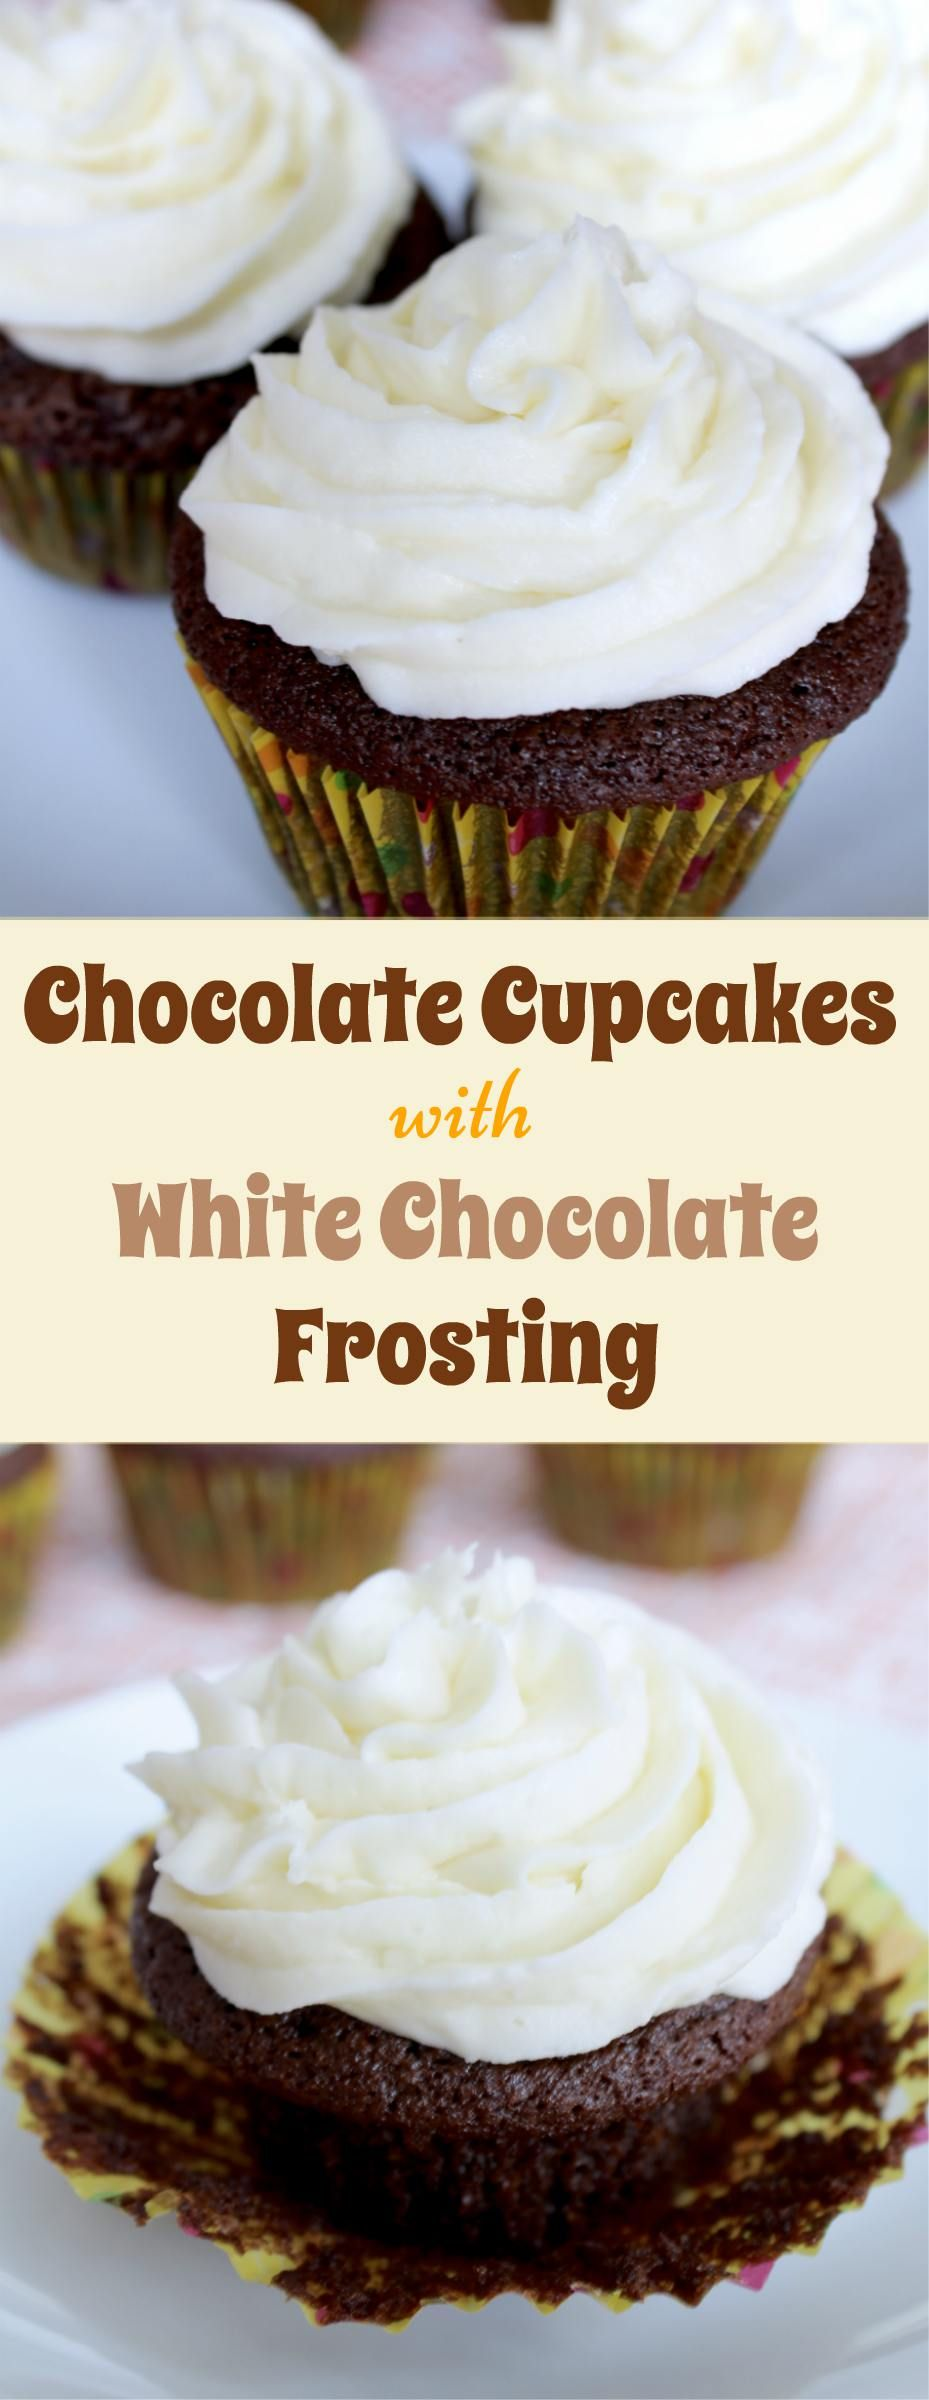 Rich Chocolate Cupcakes with creamy White Chocolate Frosting. So yummy and quite easy!